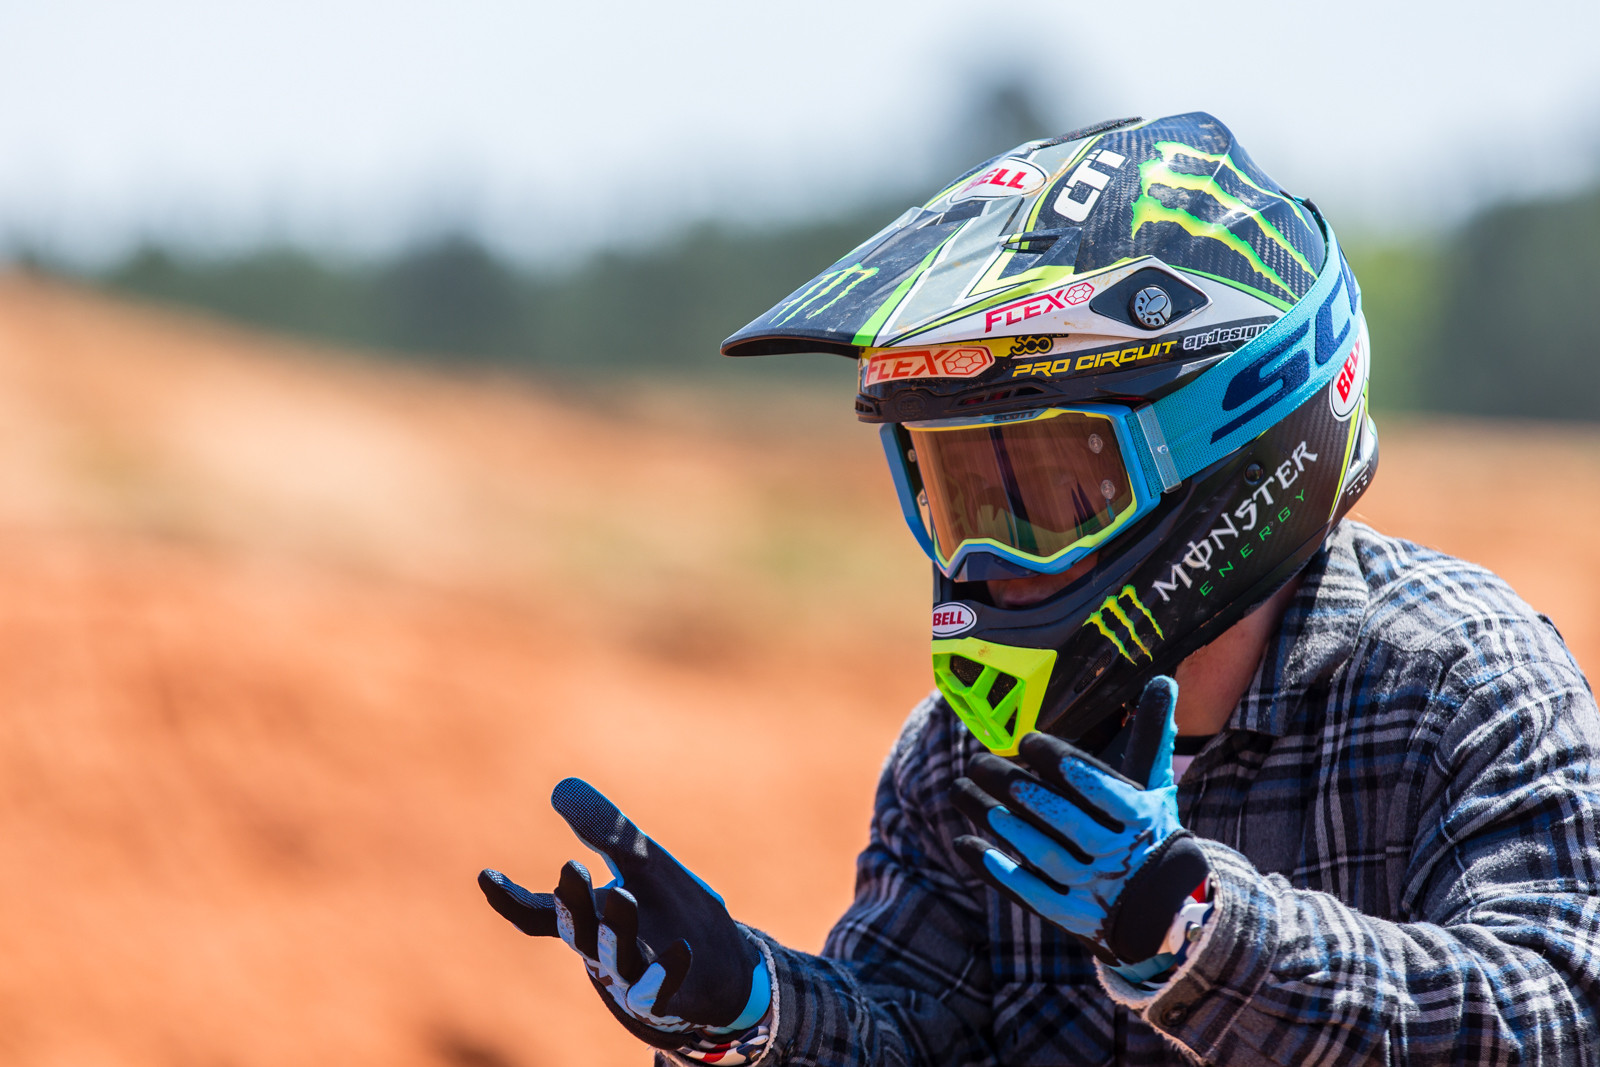 What do I do with my Hands? - Photo Gallery: The Nest, Goat Farm, and MTF - Motocross Pictures - Vital MX